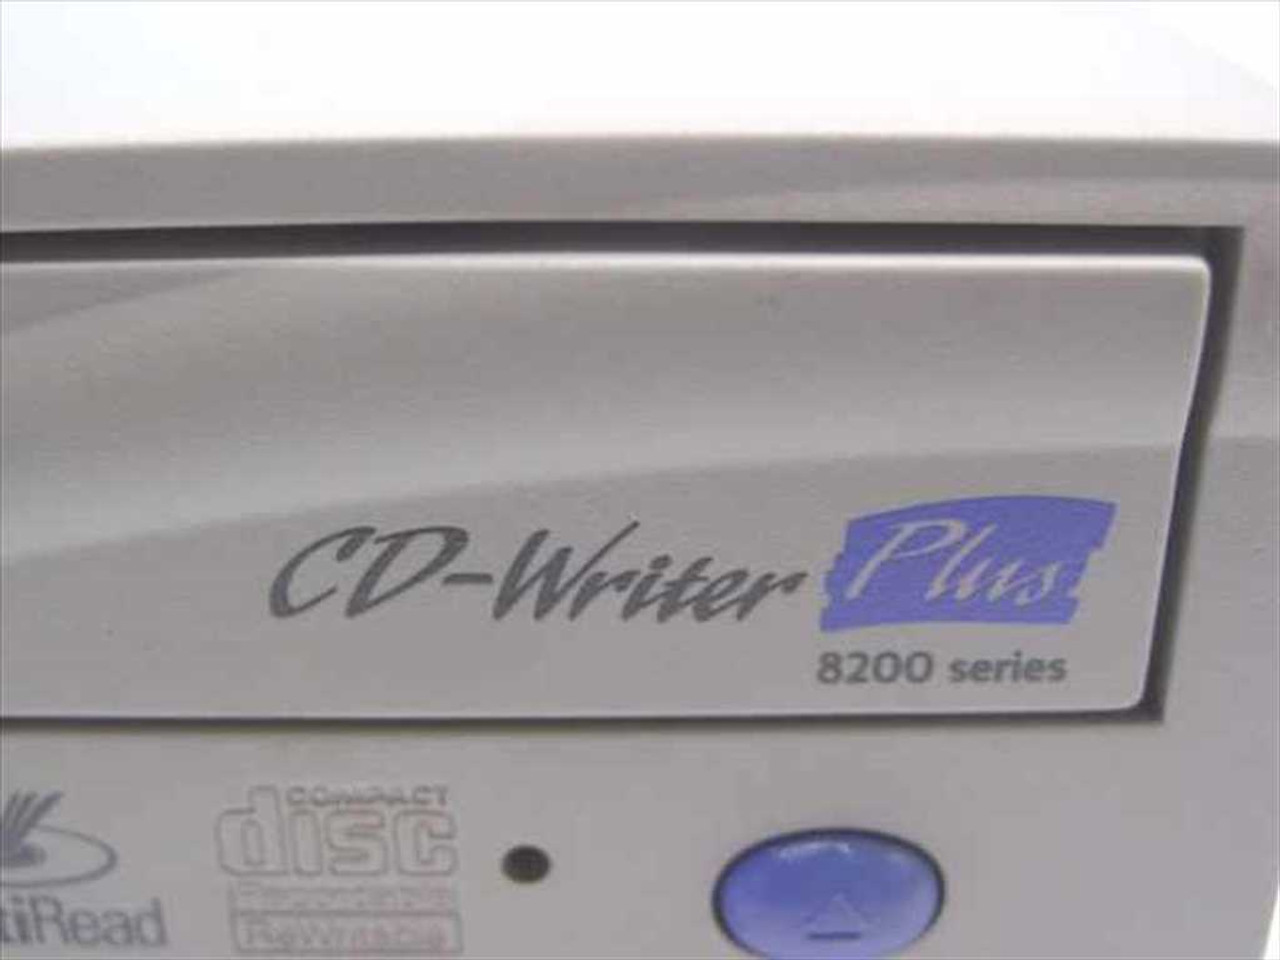 hp cd writer 8200 series manual